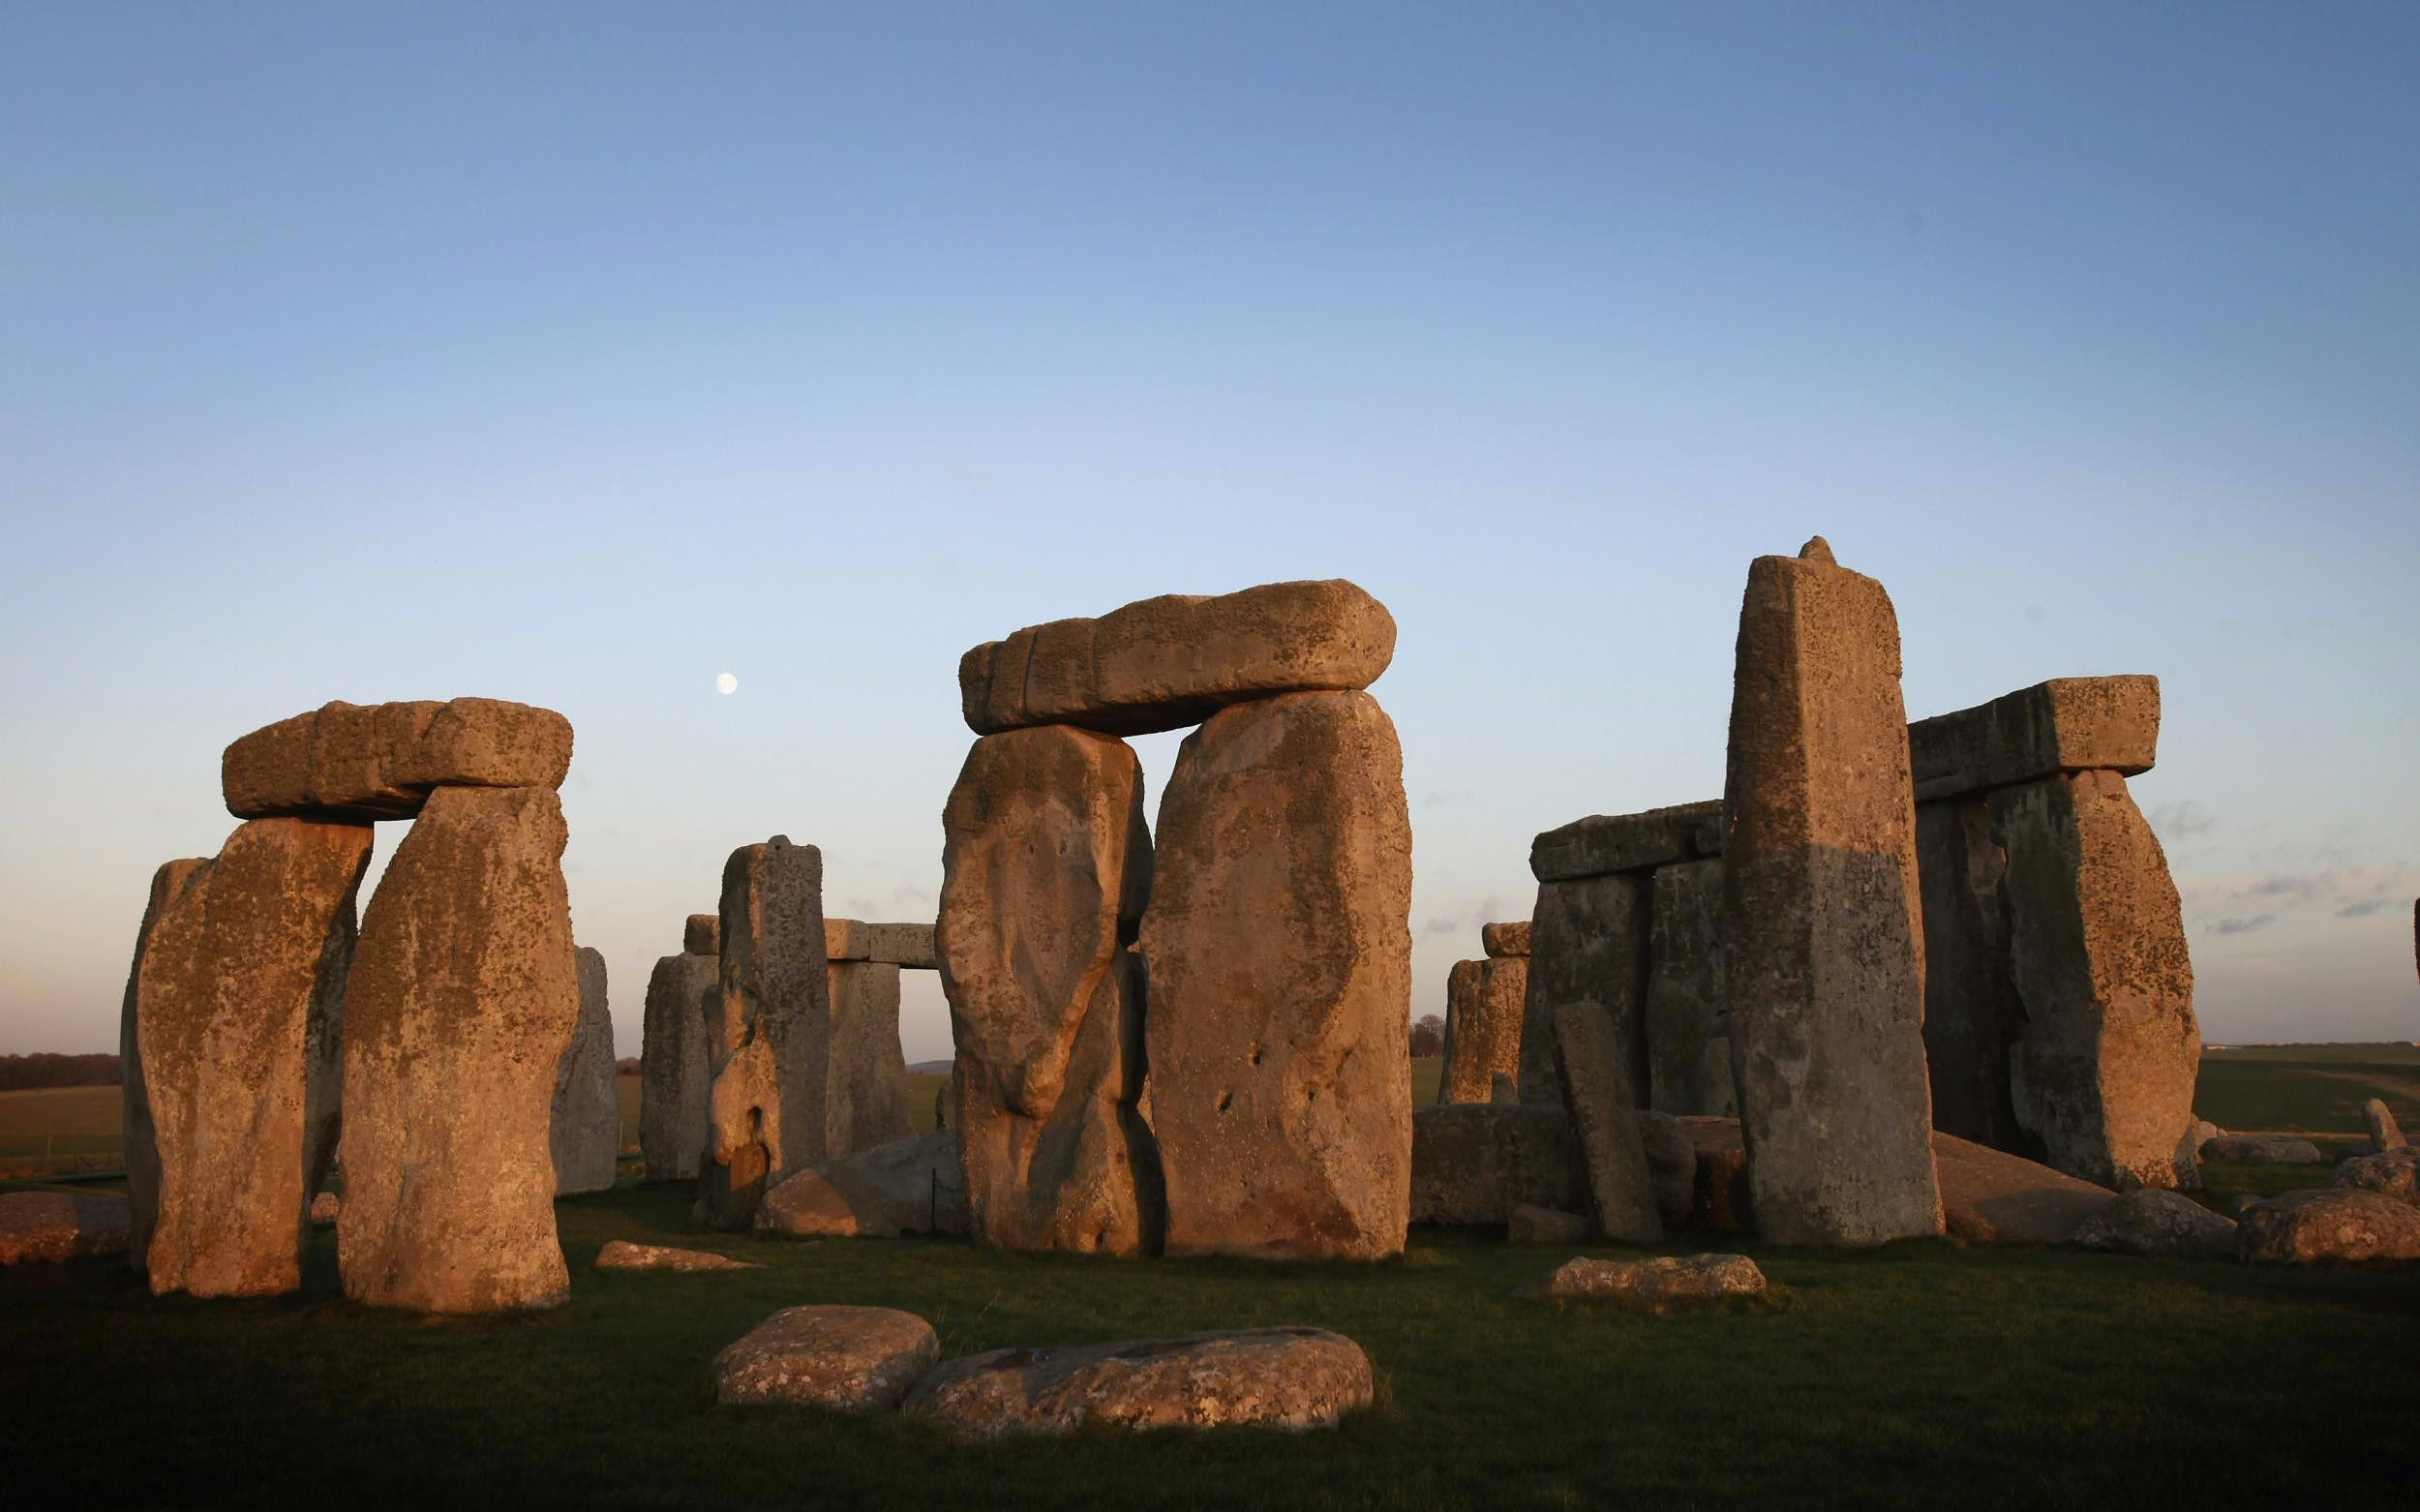 stonehenge, bath and hampton court palace tour from london-2